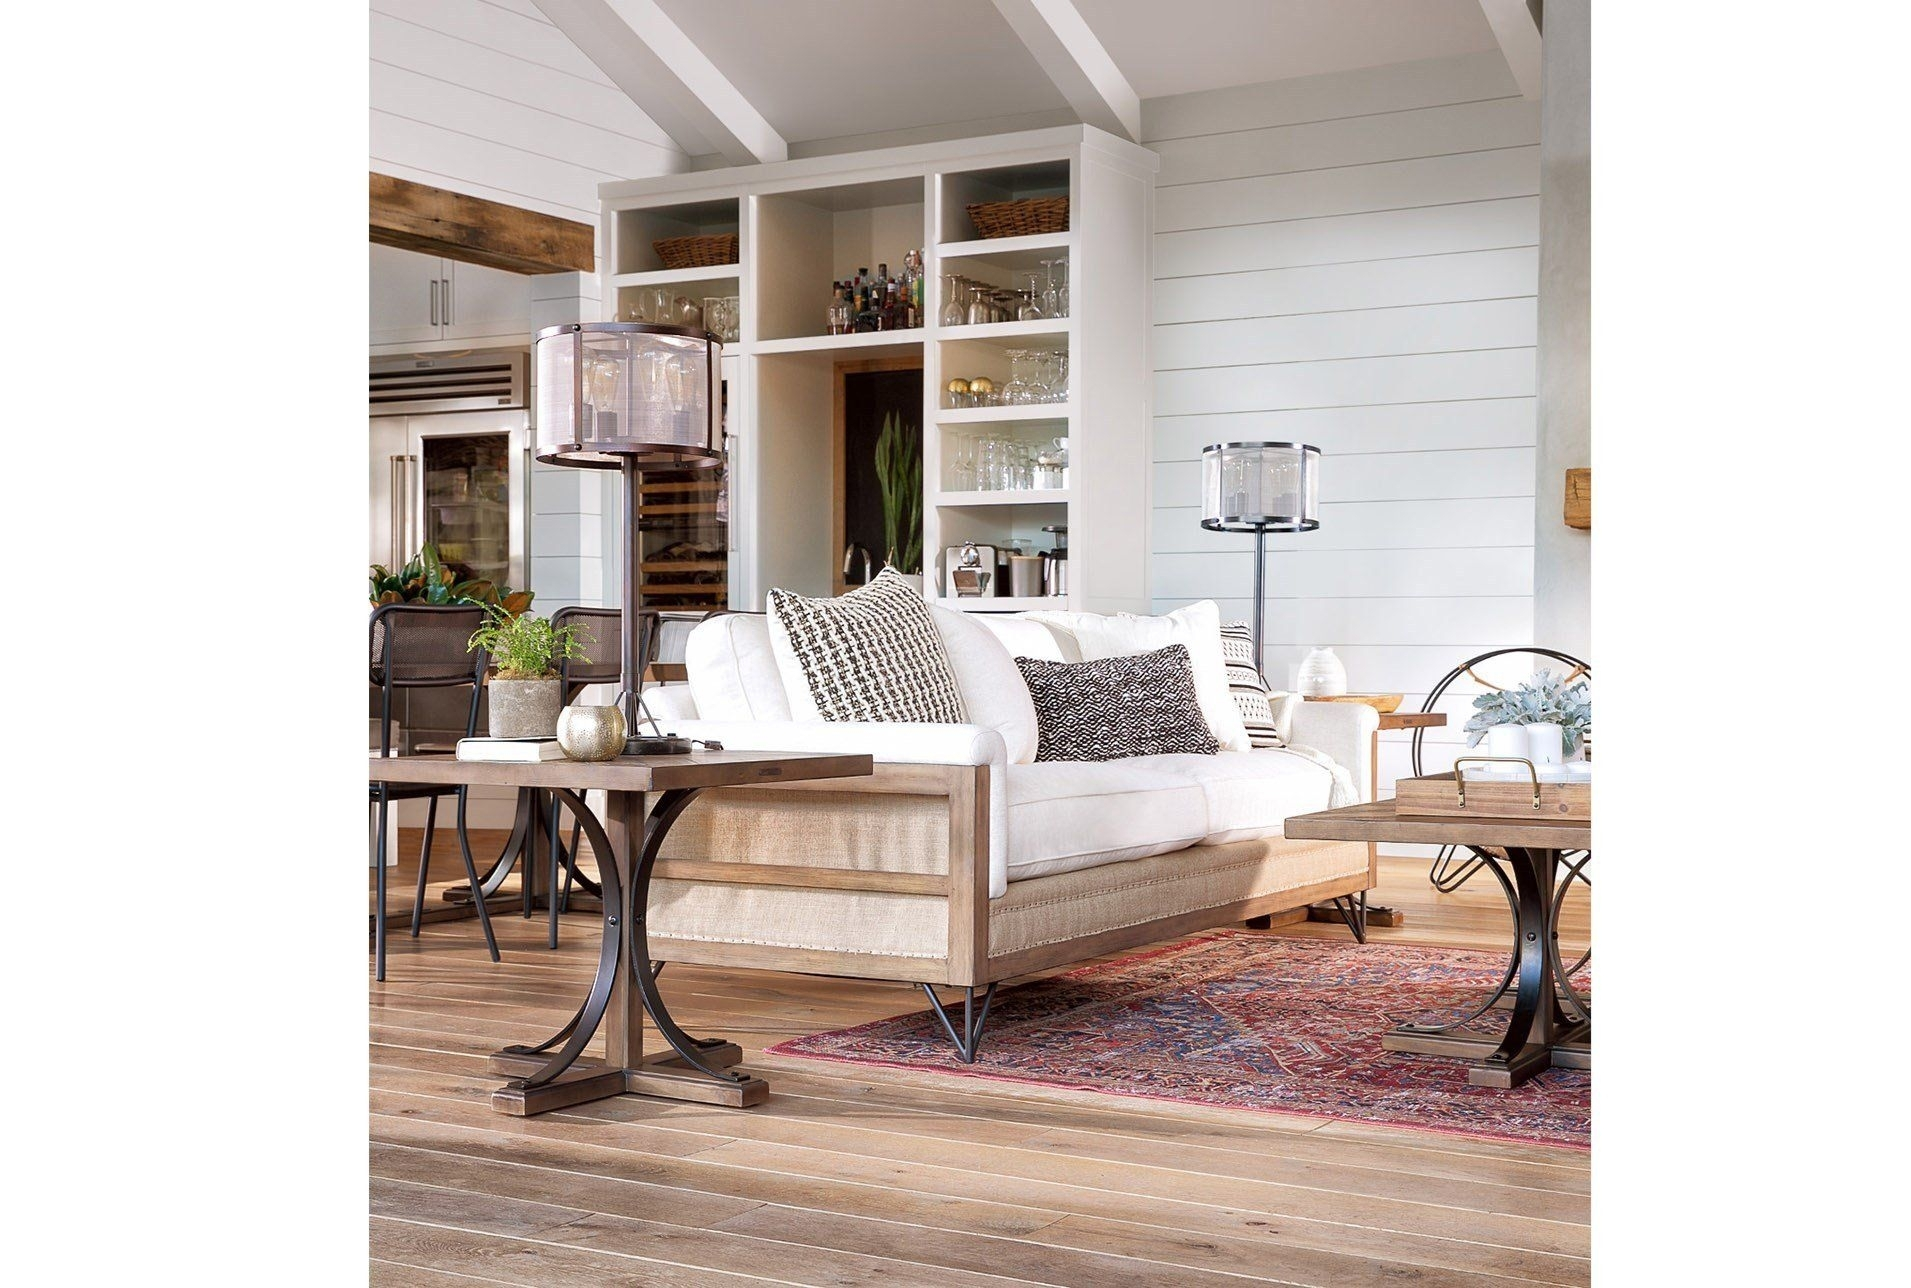 Magnolia Home Paradigm Sofajoanna Gaines   Wall Treatments Inside Magnolia Home Homestead 4 Piece Sectionals By Joanna Gaines (View 17 of 25)